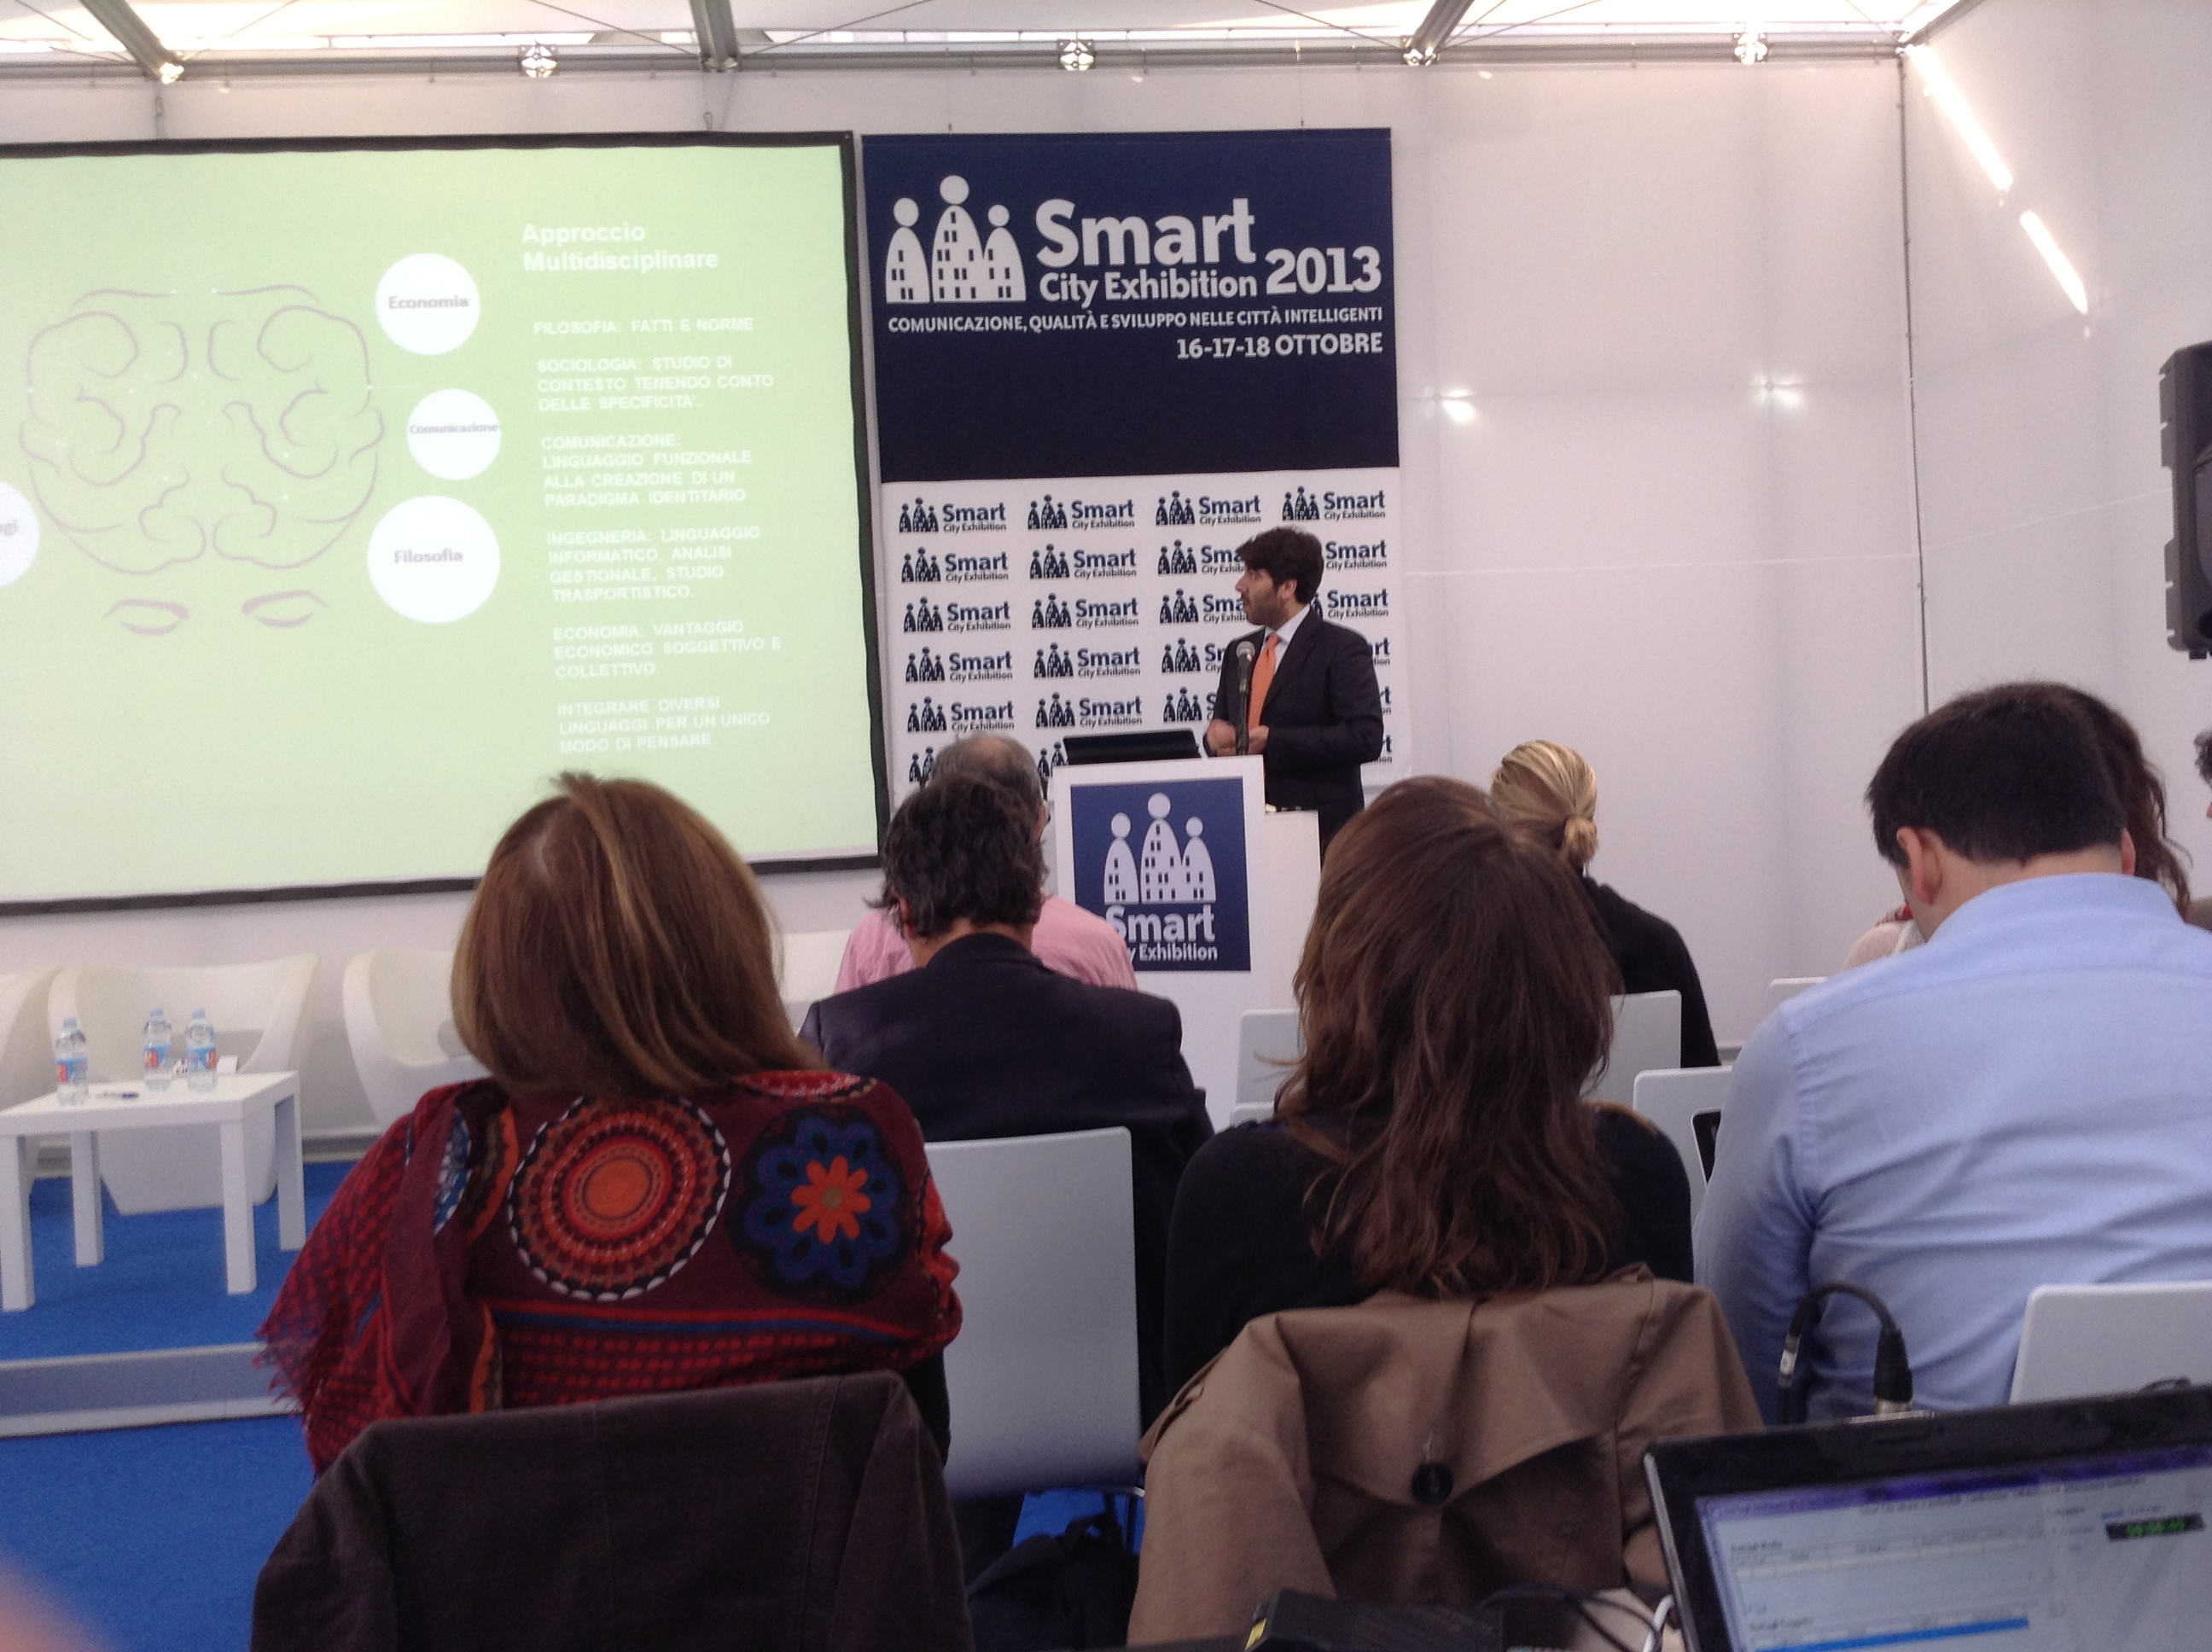 Smart City Exhibition (17 ottobre)